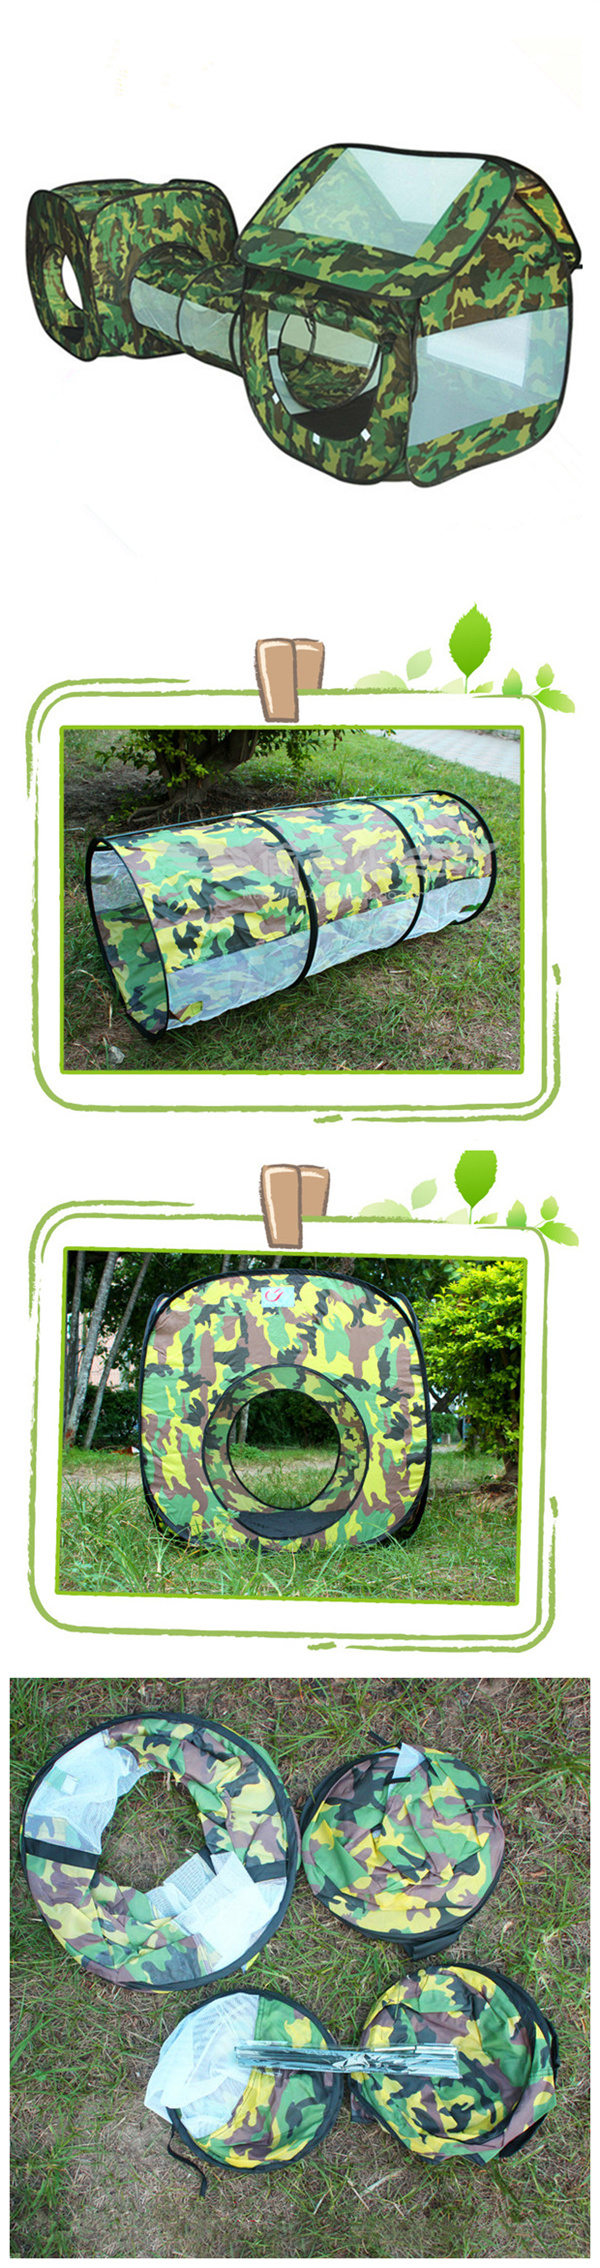 3 In 1 Outdoor Camping Tent Kids Play Fun House Children Crawl Tunnel Sunshade